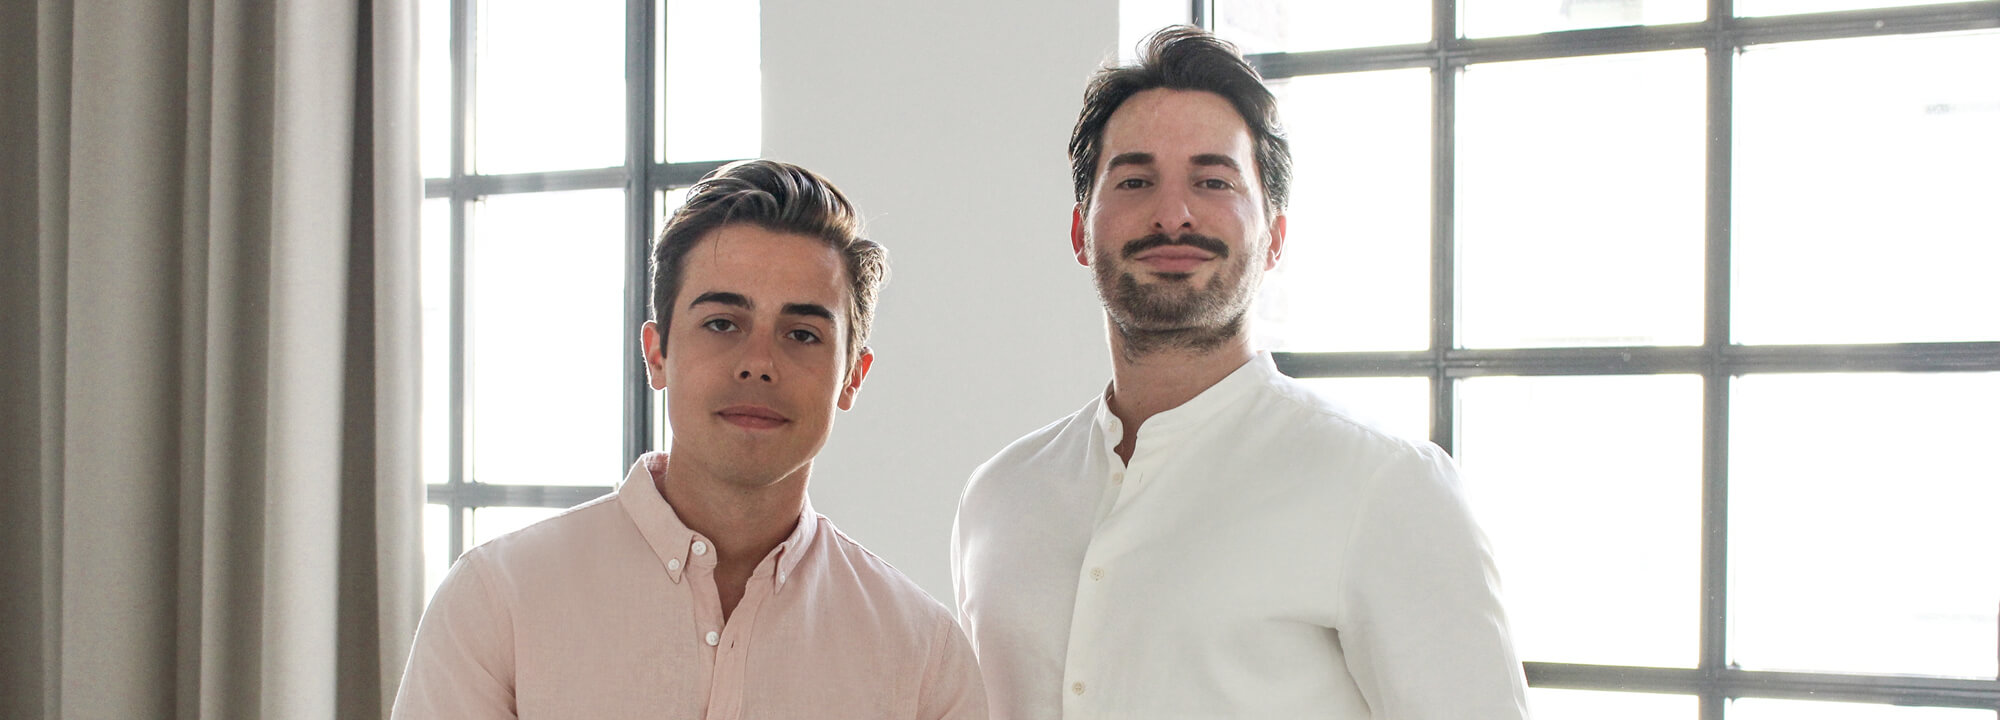 cbs-founders-emre-aydin-and-rene-schröder-from-orderfy